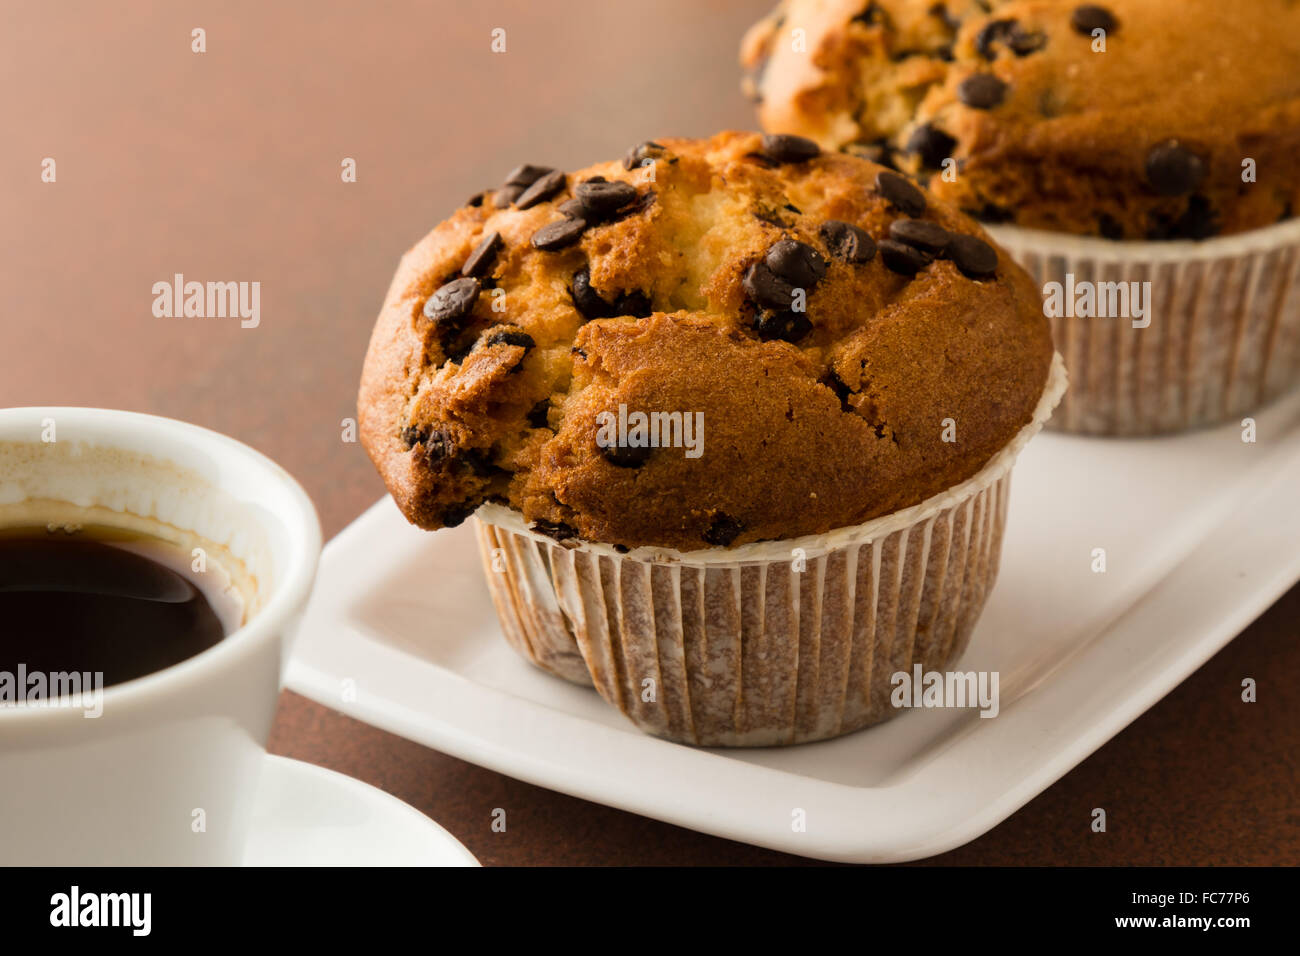 muffins and coffe - Stock Image